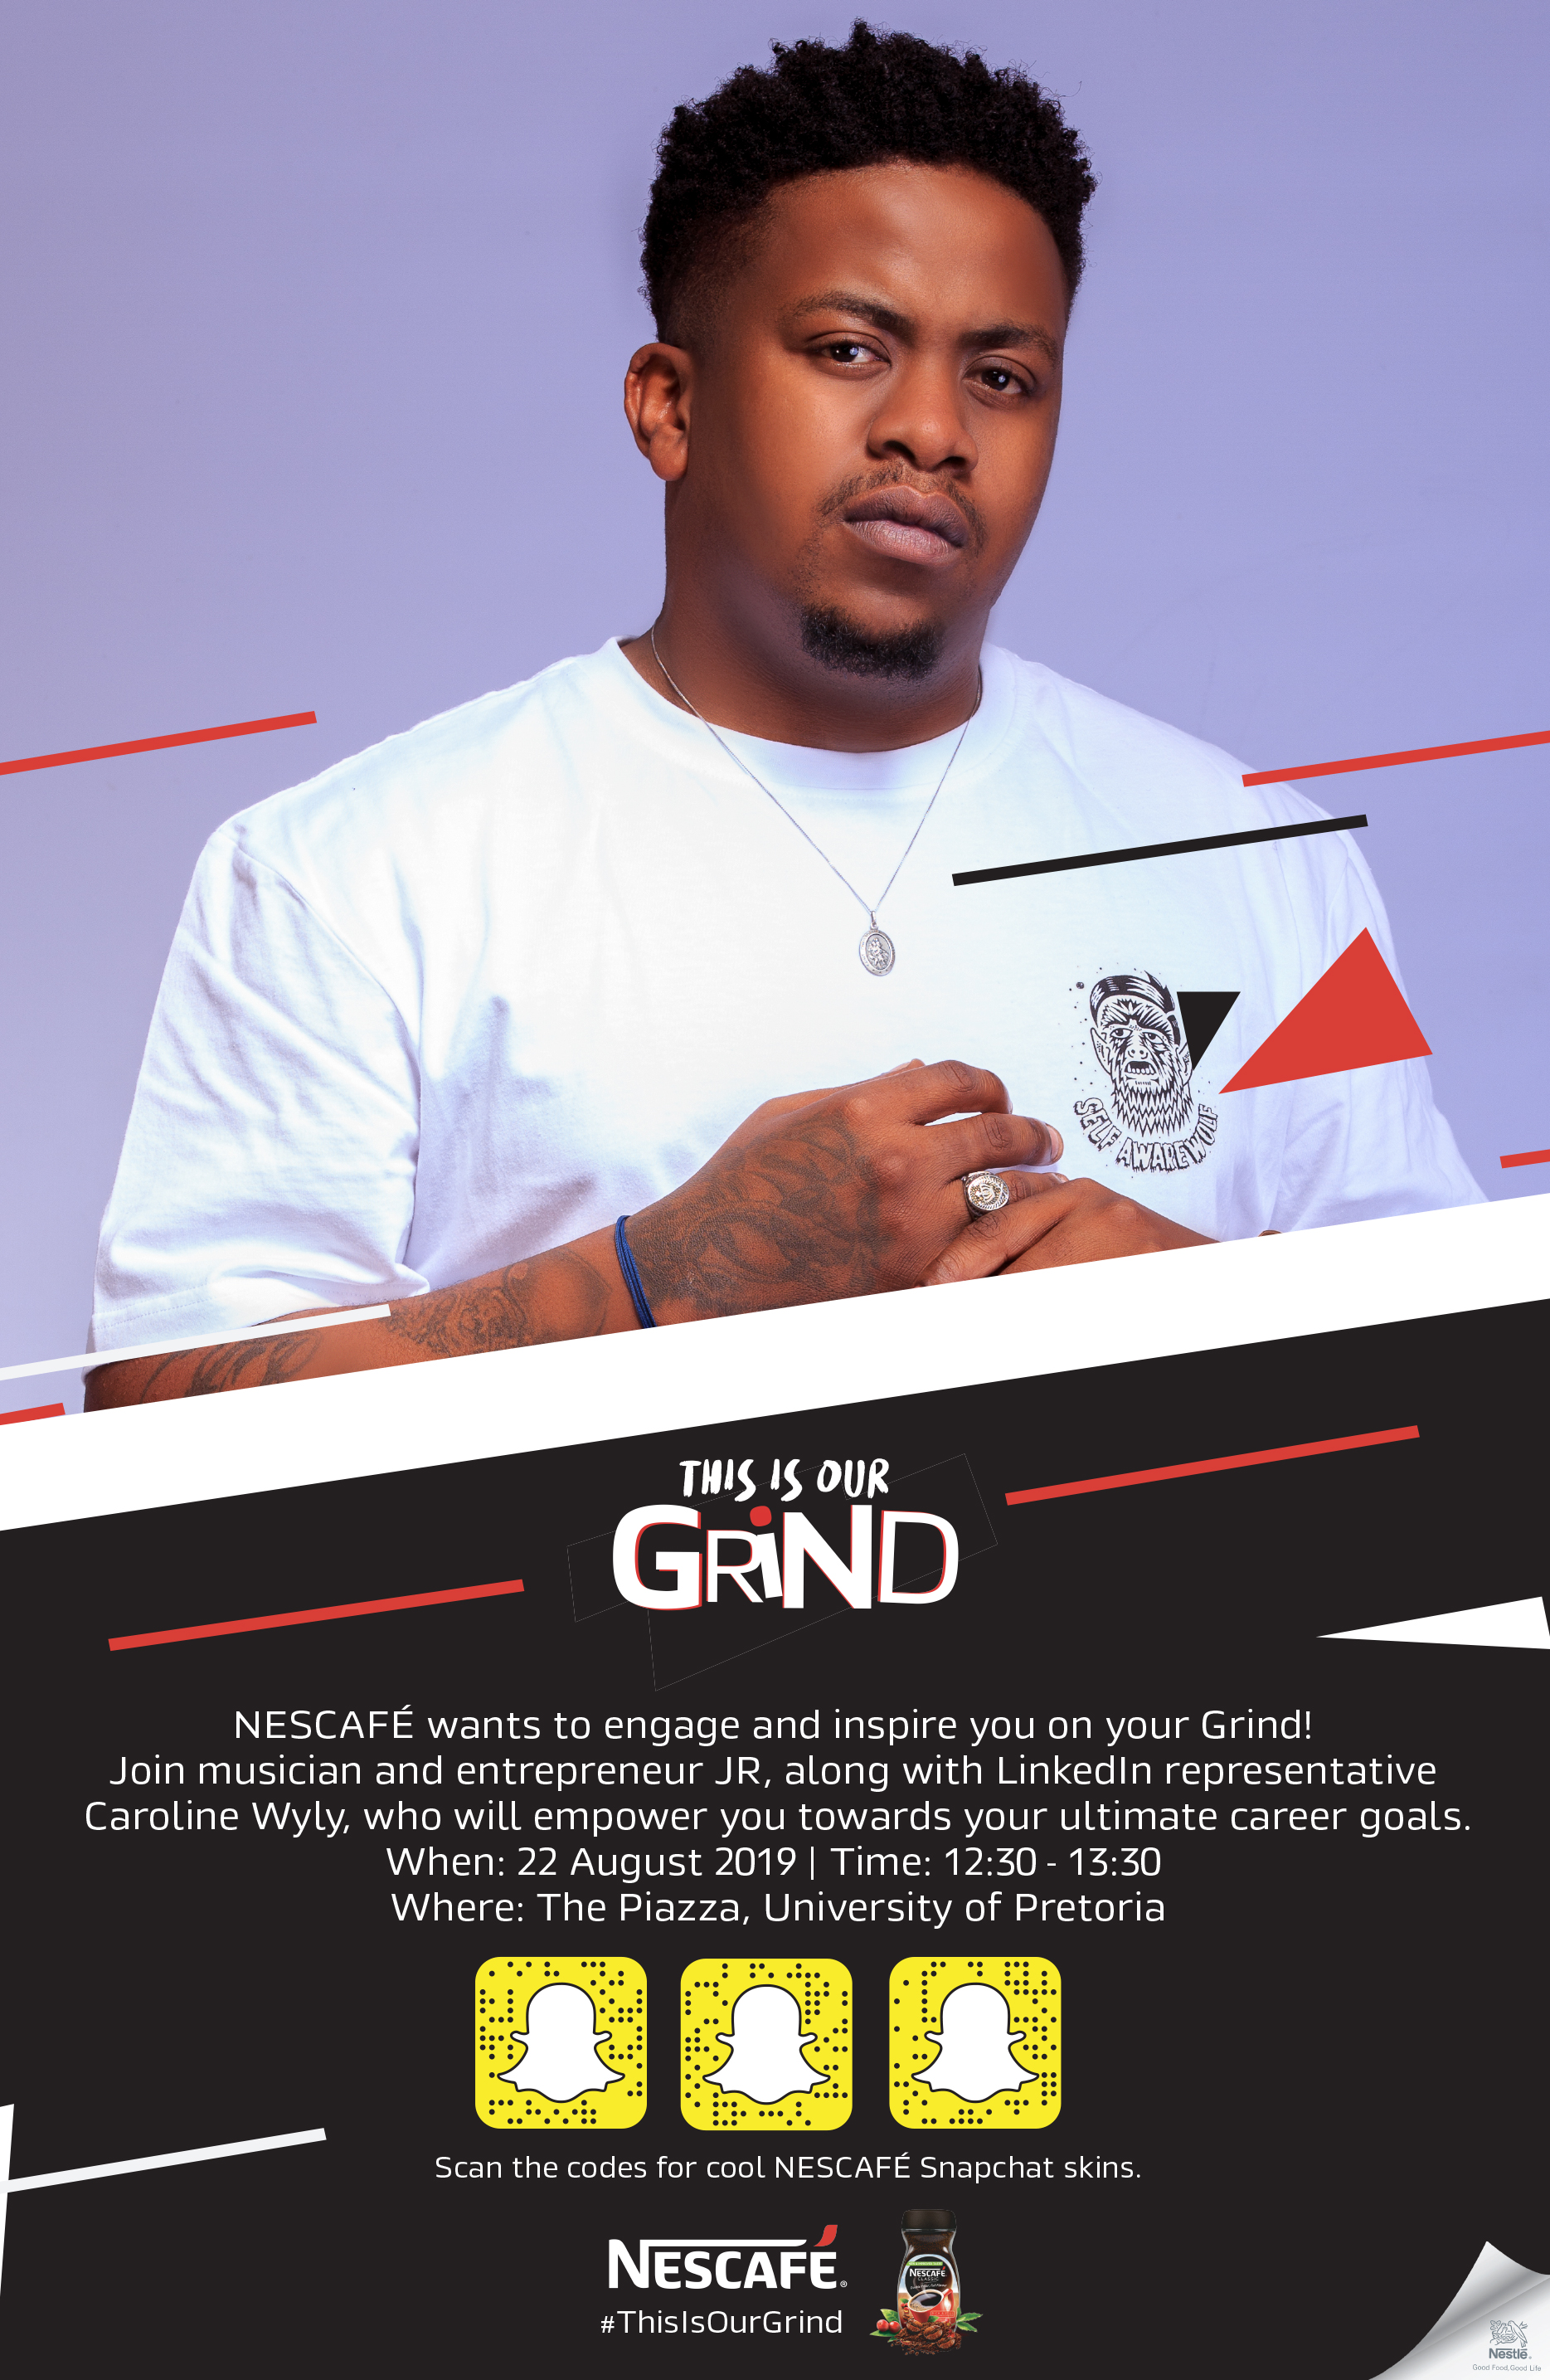 This is our Grind: Talk on LinkedIn and Entrepreneurship